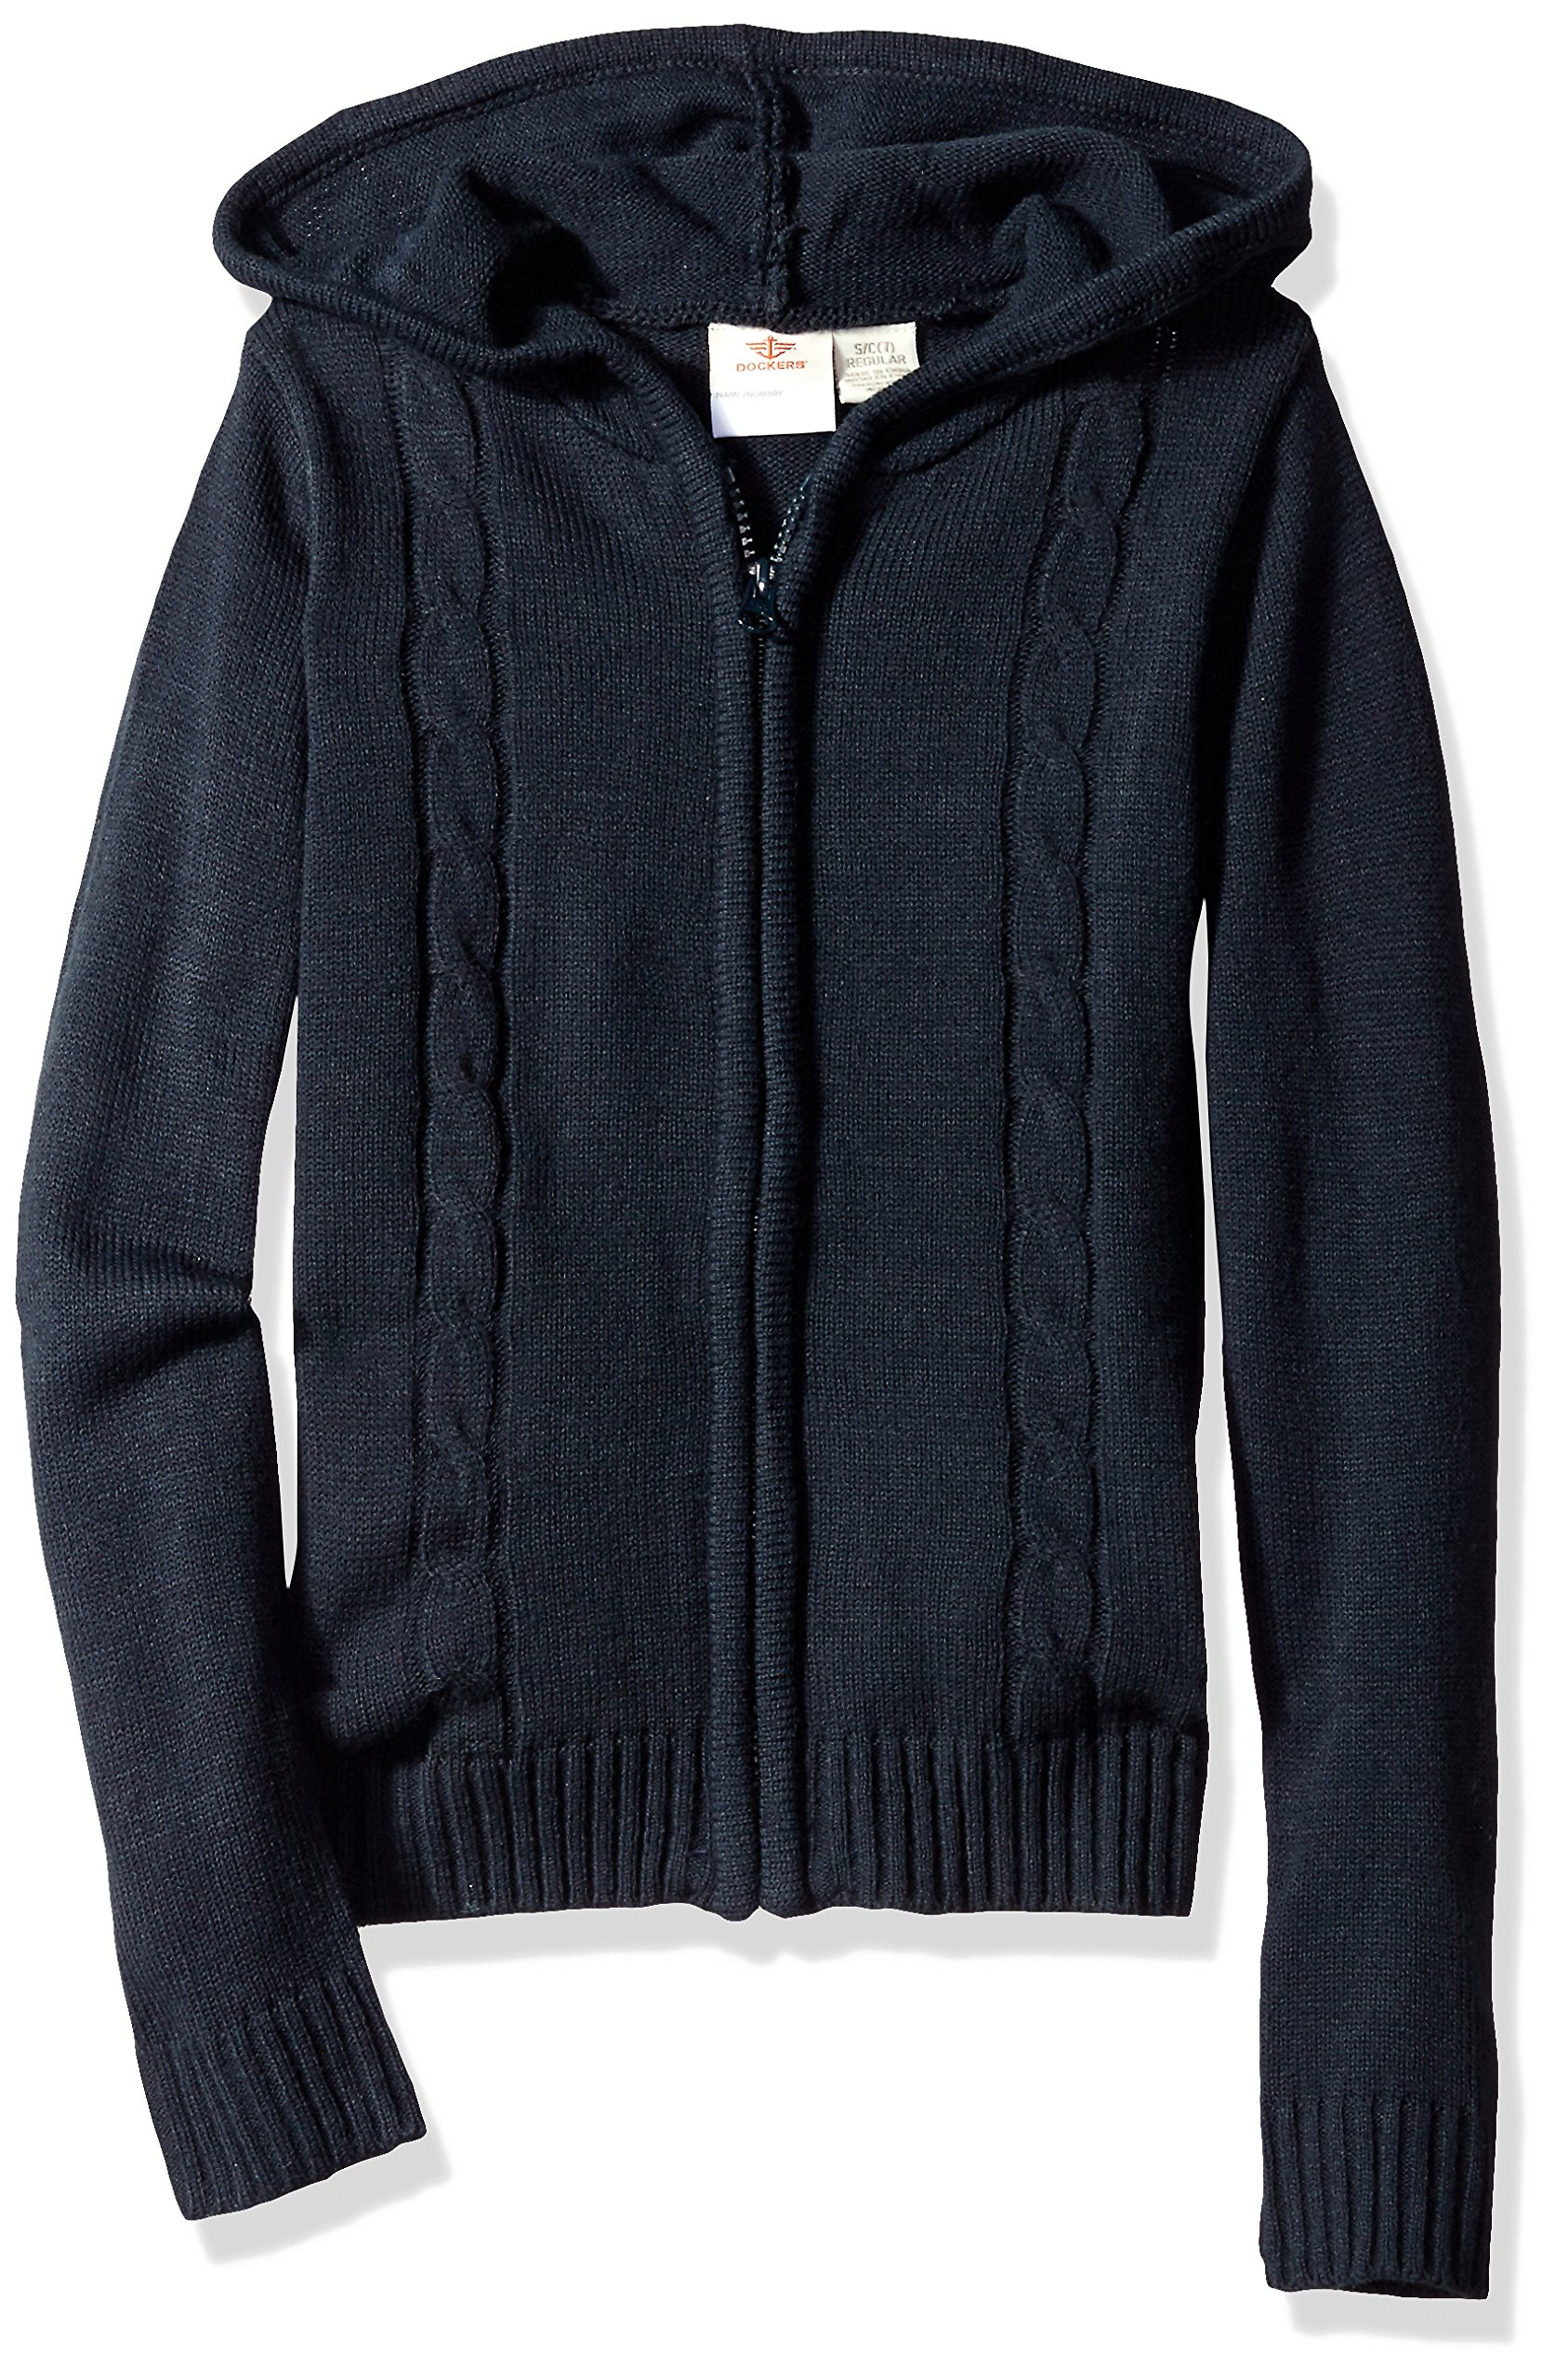 Dockers Big Girls' Hooded Cable Sweater, Navy, Large (12/14)